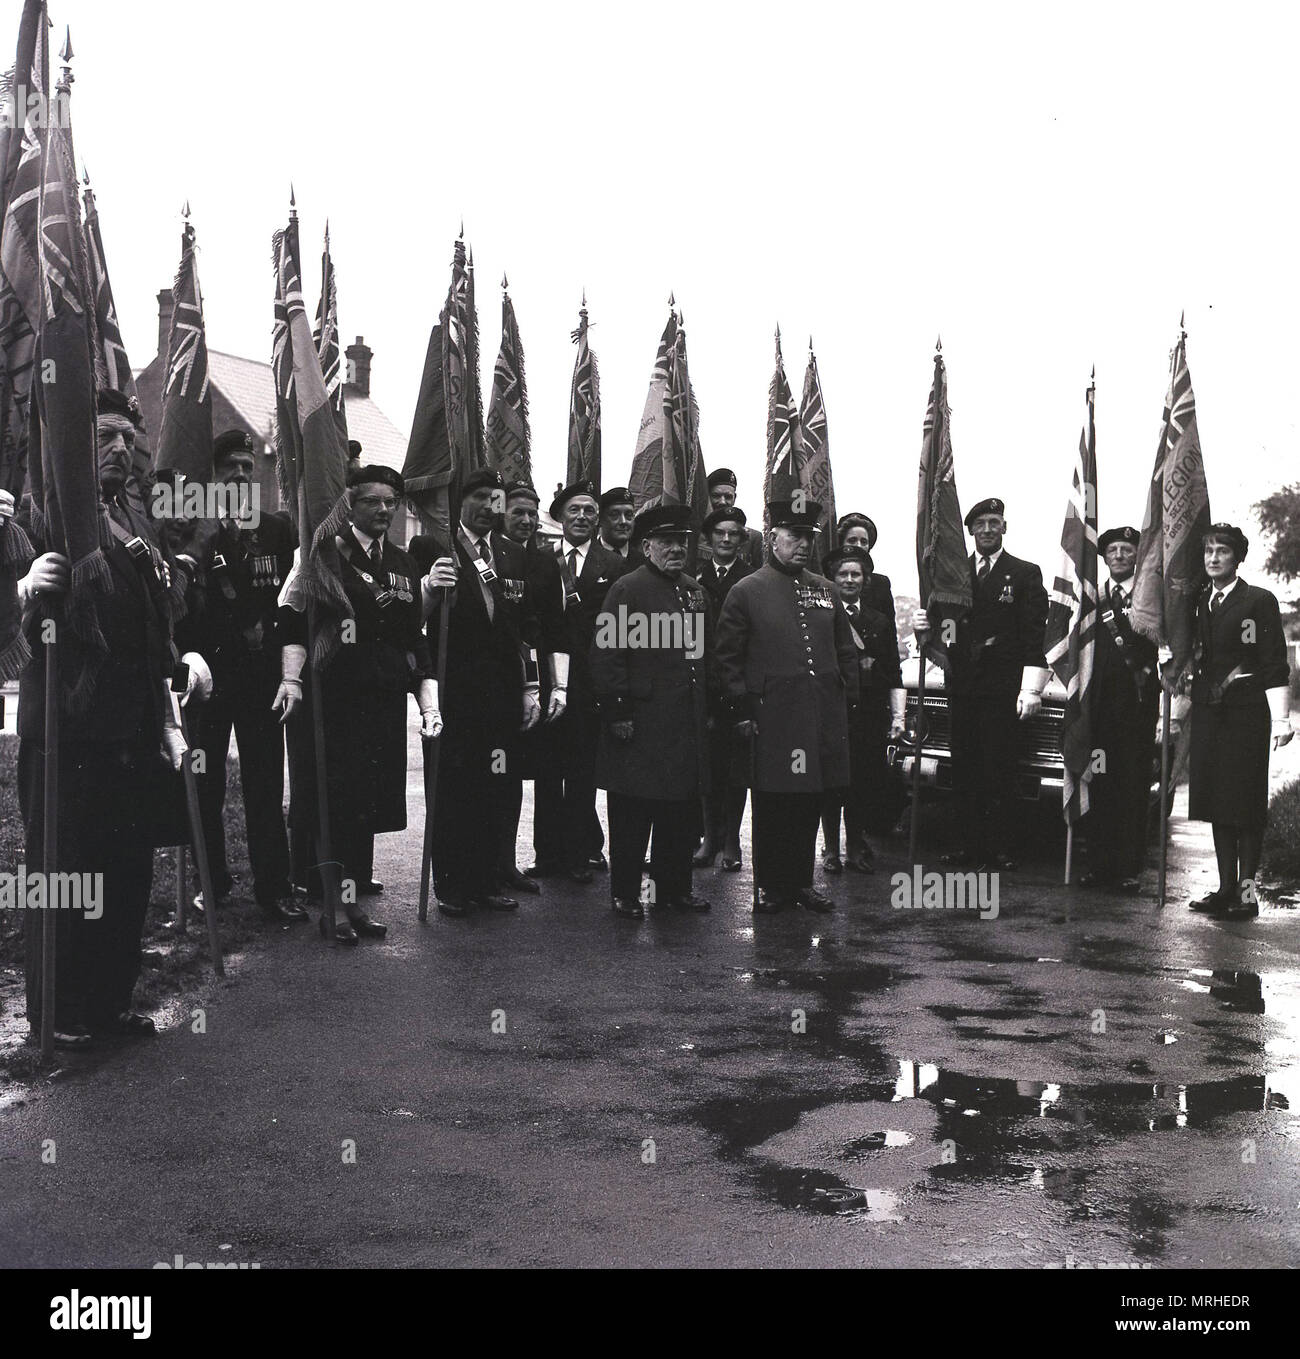 1964, historical, veteran soldiers of the British Armed Forces with regimental flags line-up gather outside on a wet road before a remembrance sunday march for the armed services charity, the Royal British Legion, Bucks, England, UK. - Stock Image